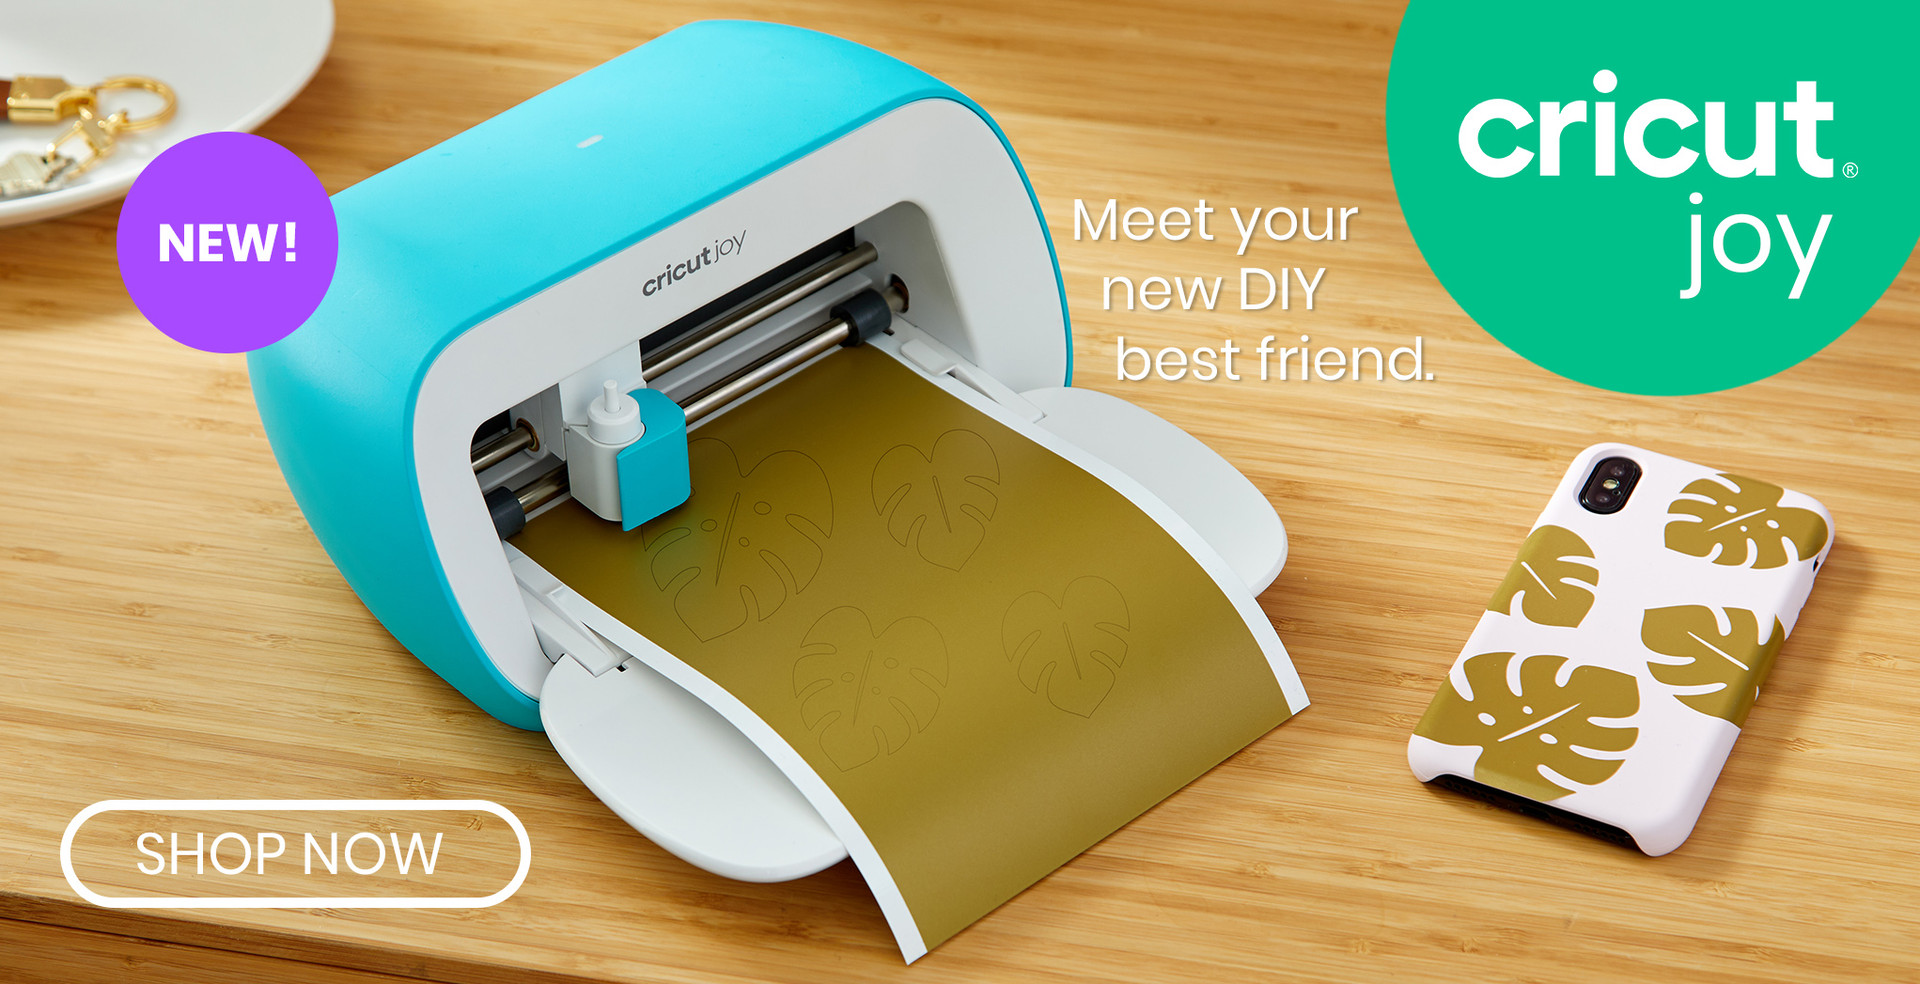 Shop Now for Cricut Joy: Your new DIY best friend